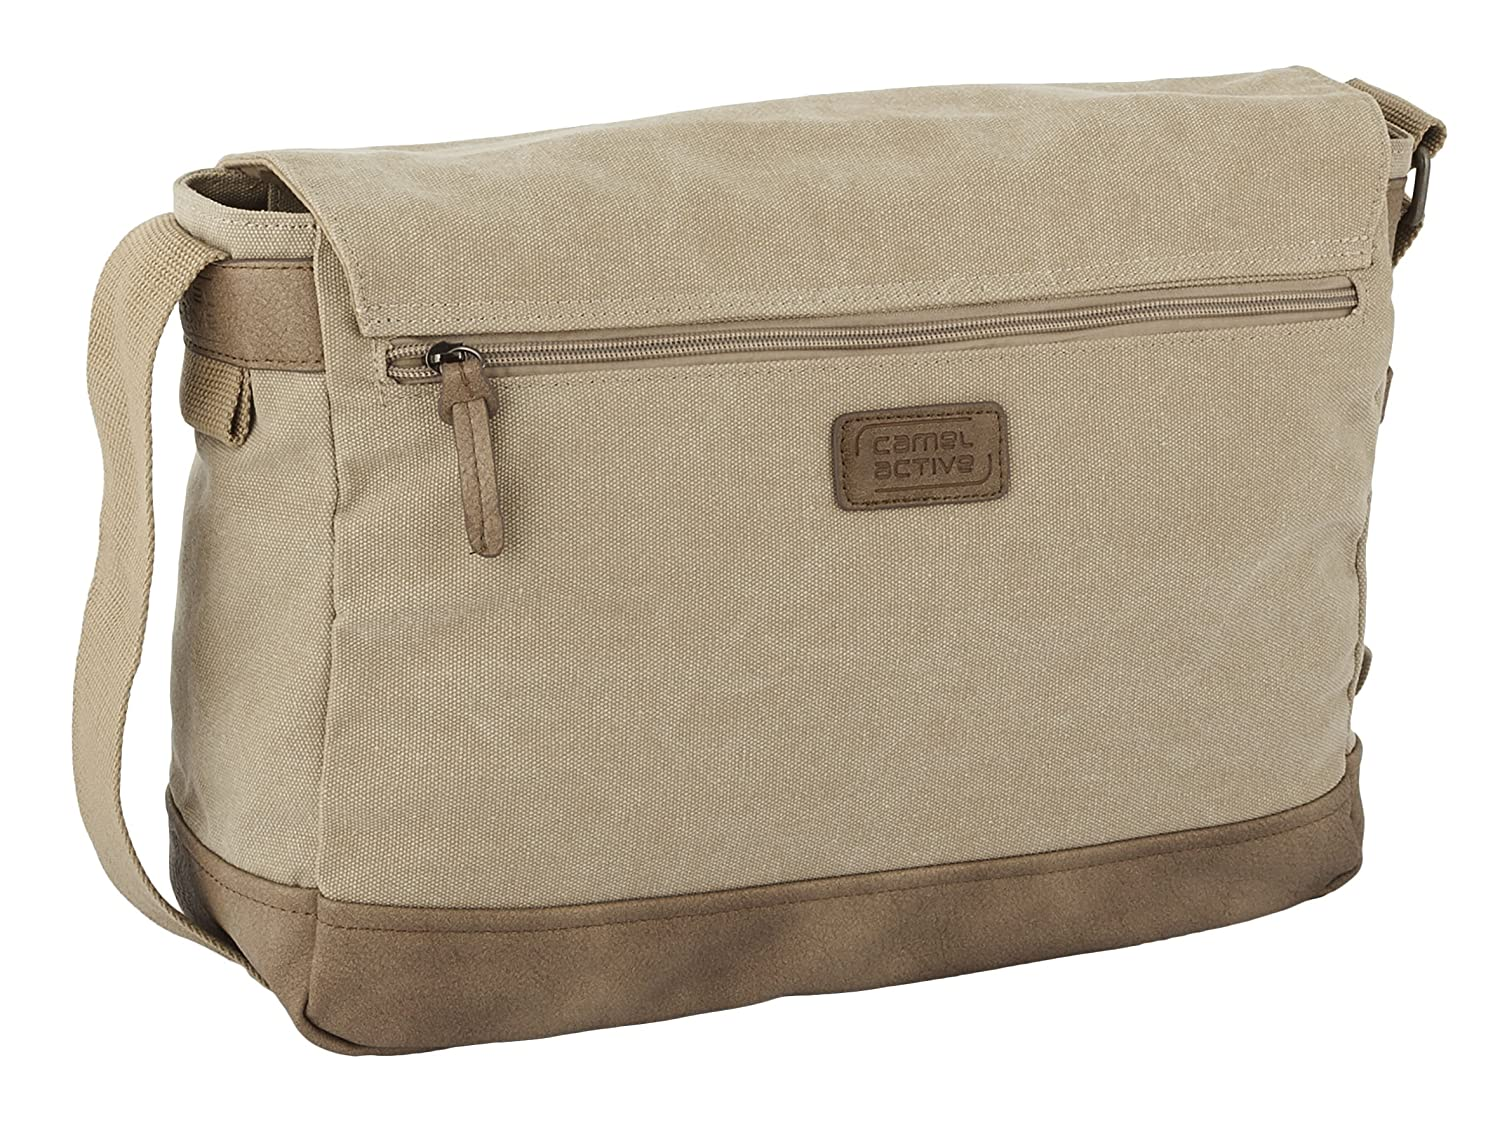 Camel Active Briefcase - 220 801 23 Clearance Deals Sale Choice Official For Sale Shop For K2zNxeRDd